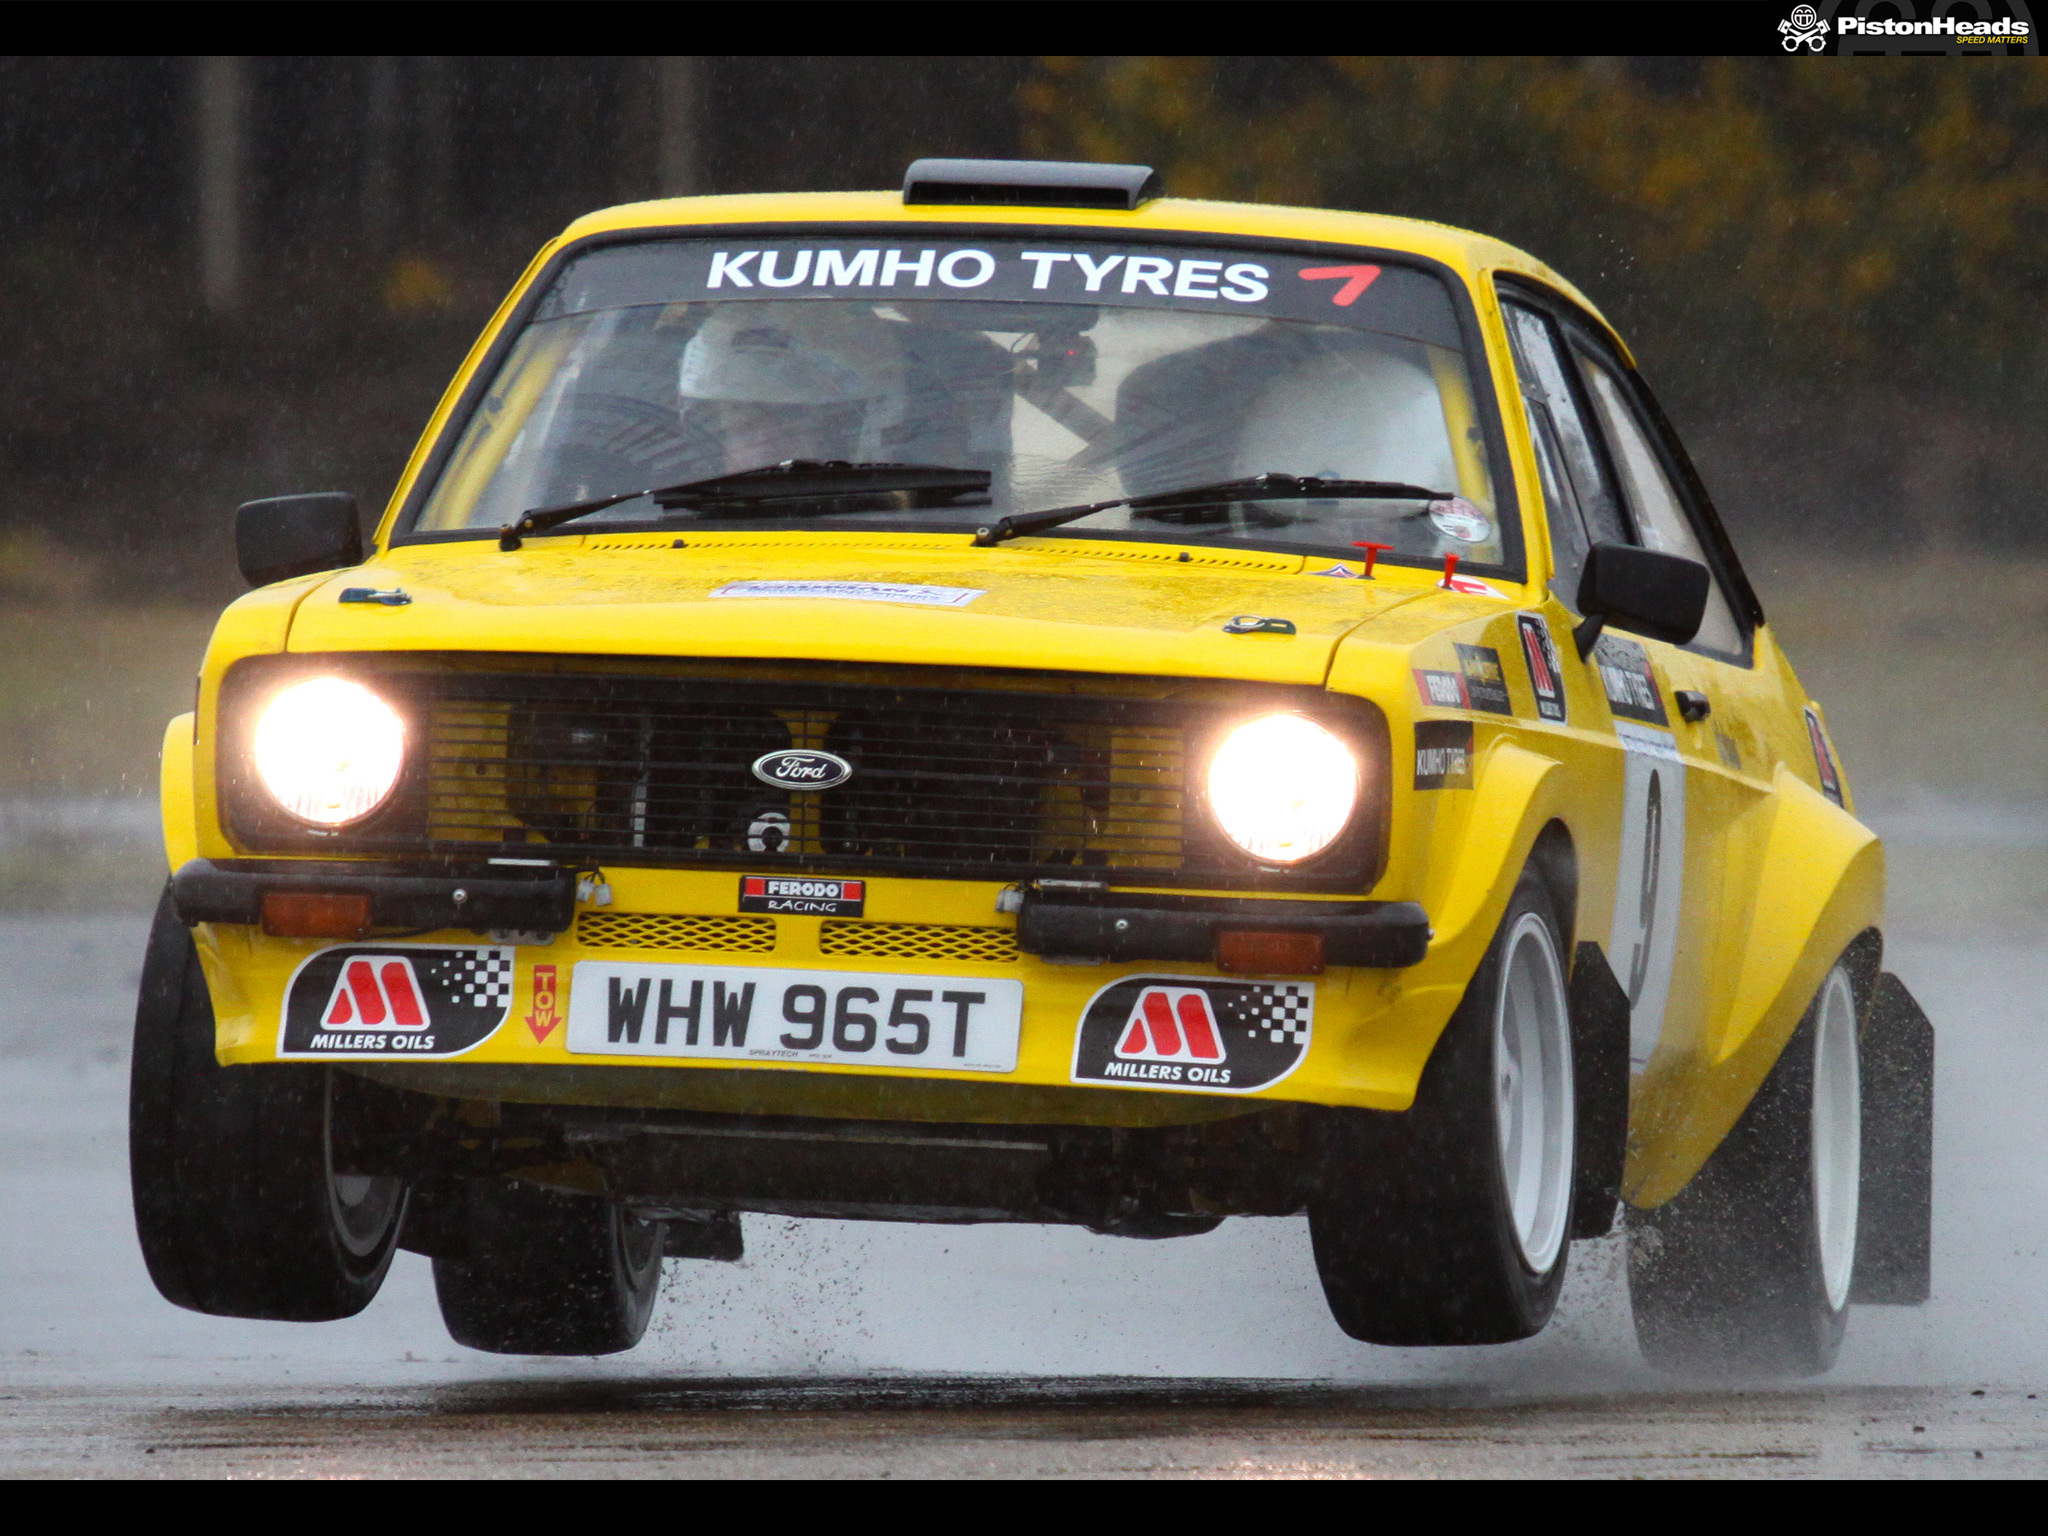 Ford Escort Mk2 RS: Pic Of The Week | PistonHeads